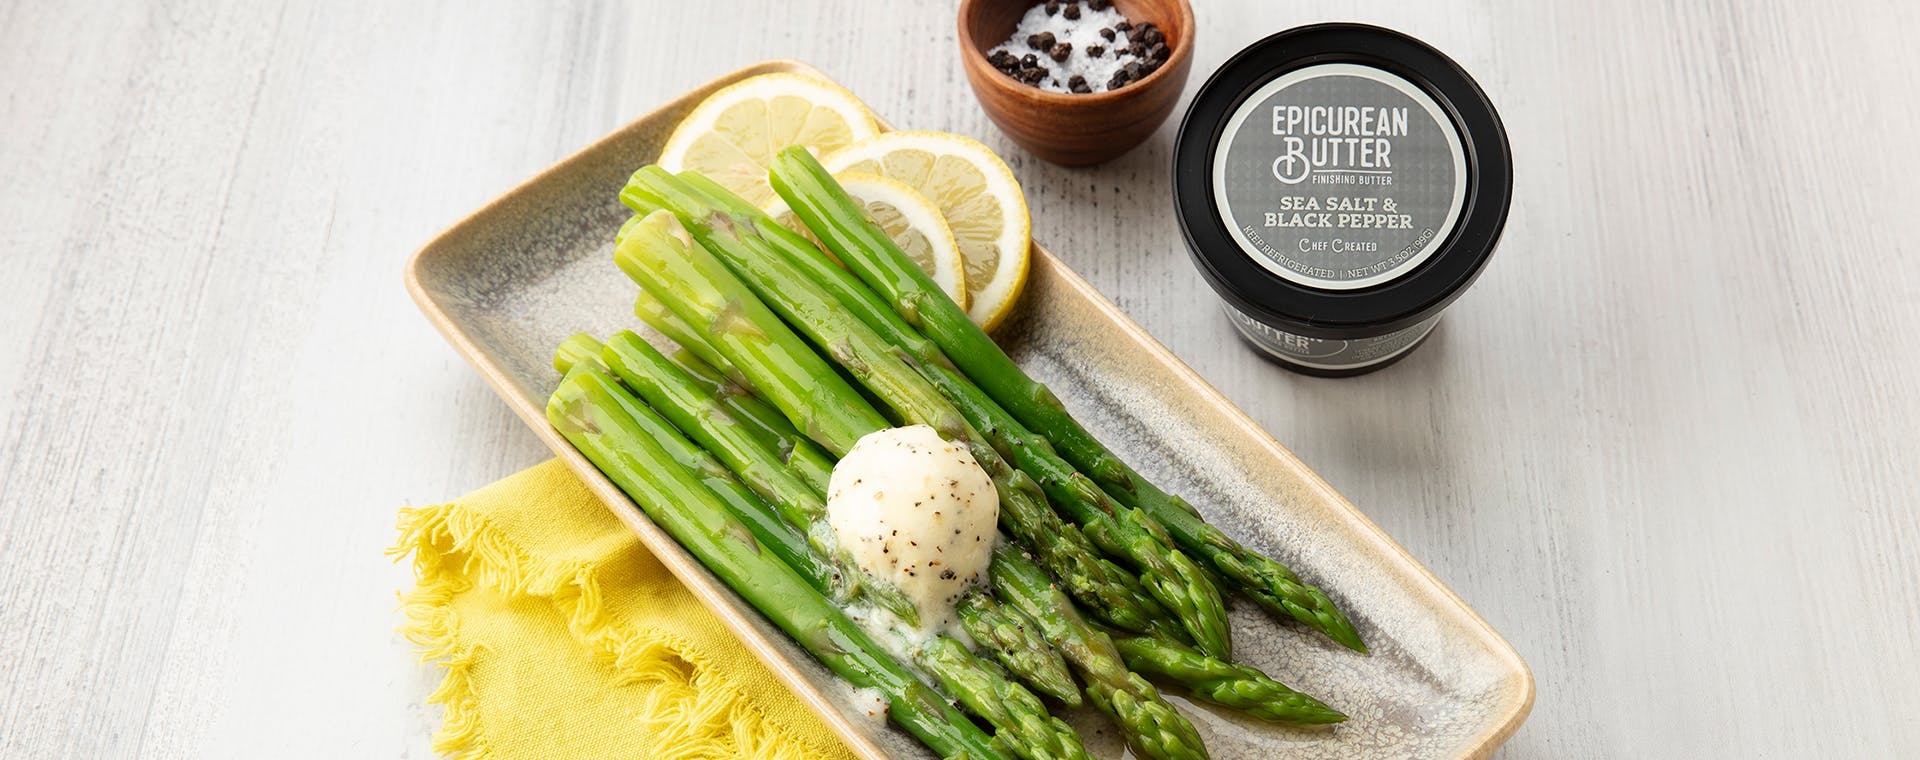 Asparagus With Sea Salt & Black Pepper flavored butter